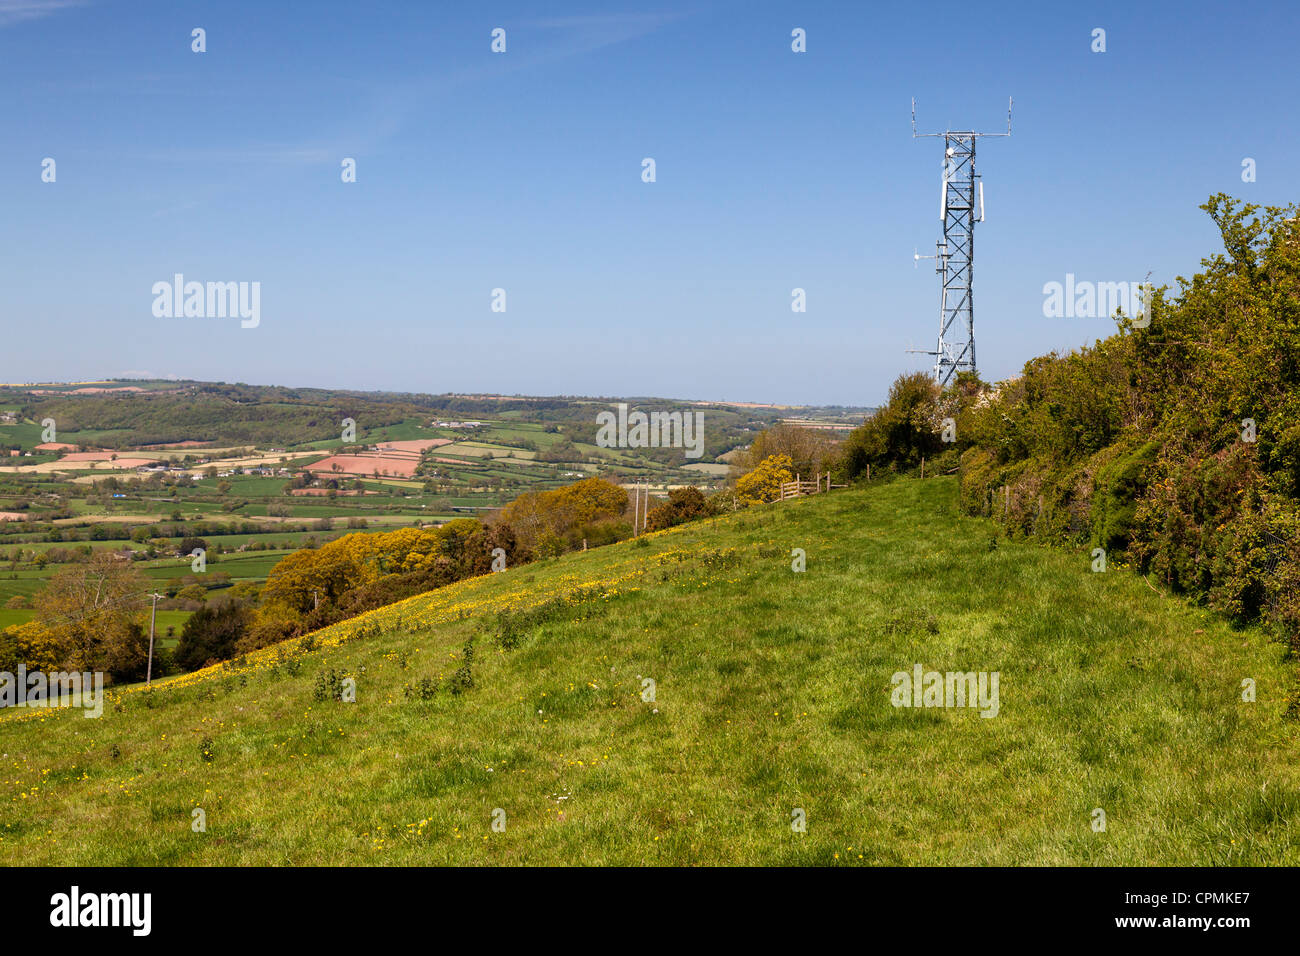 Telecommunications mast in the middle of the countryside, Musbury, Devon - Stock Image